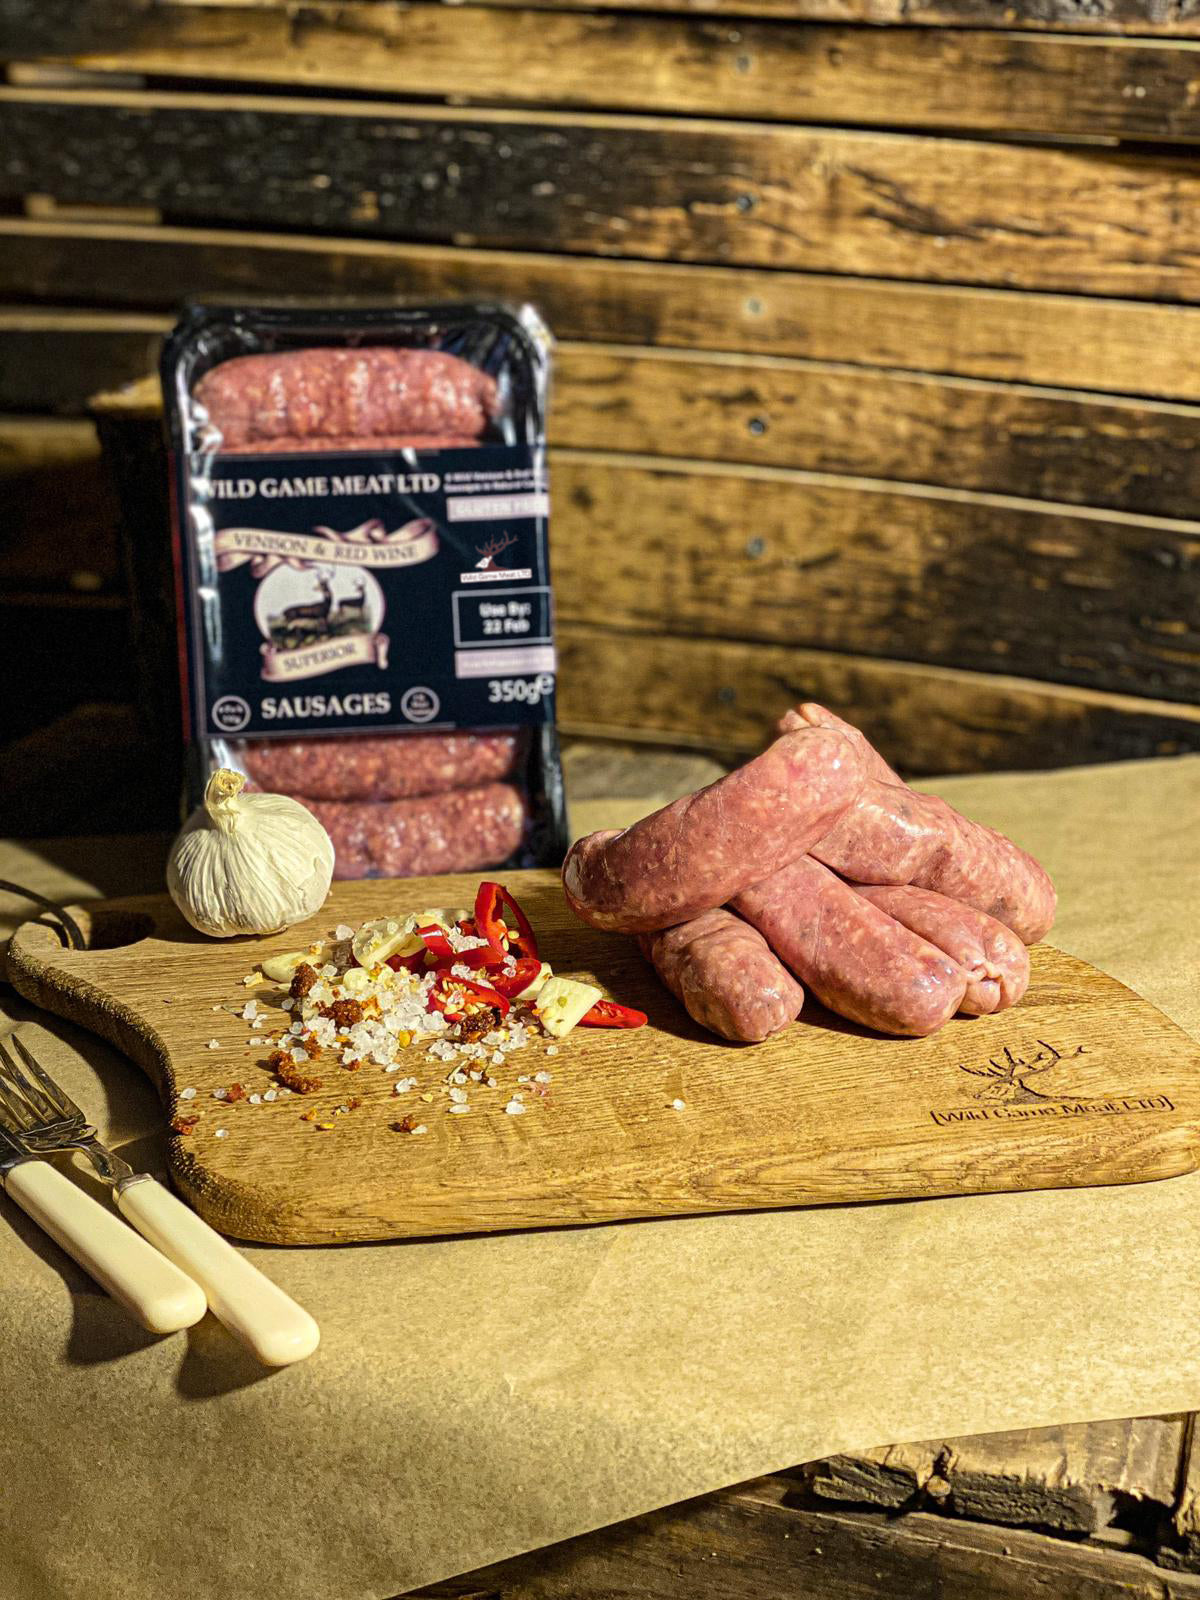 Venison & Red Wine sausages - Wild Game Meat